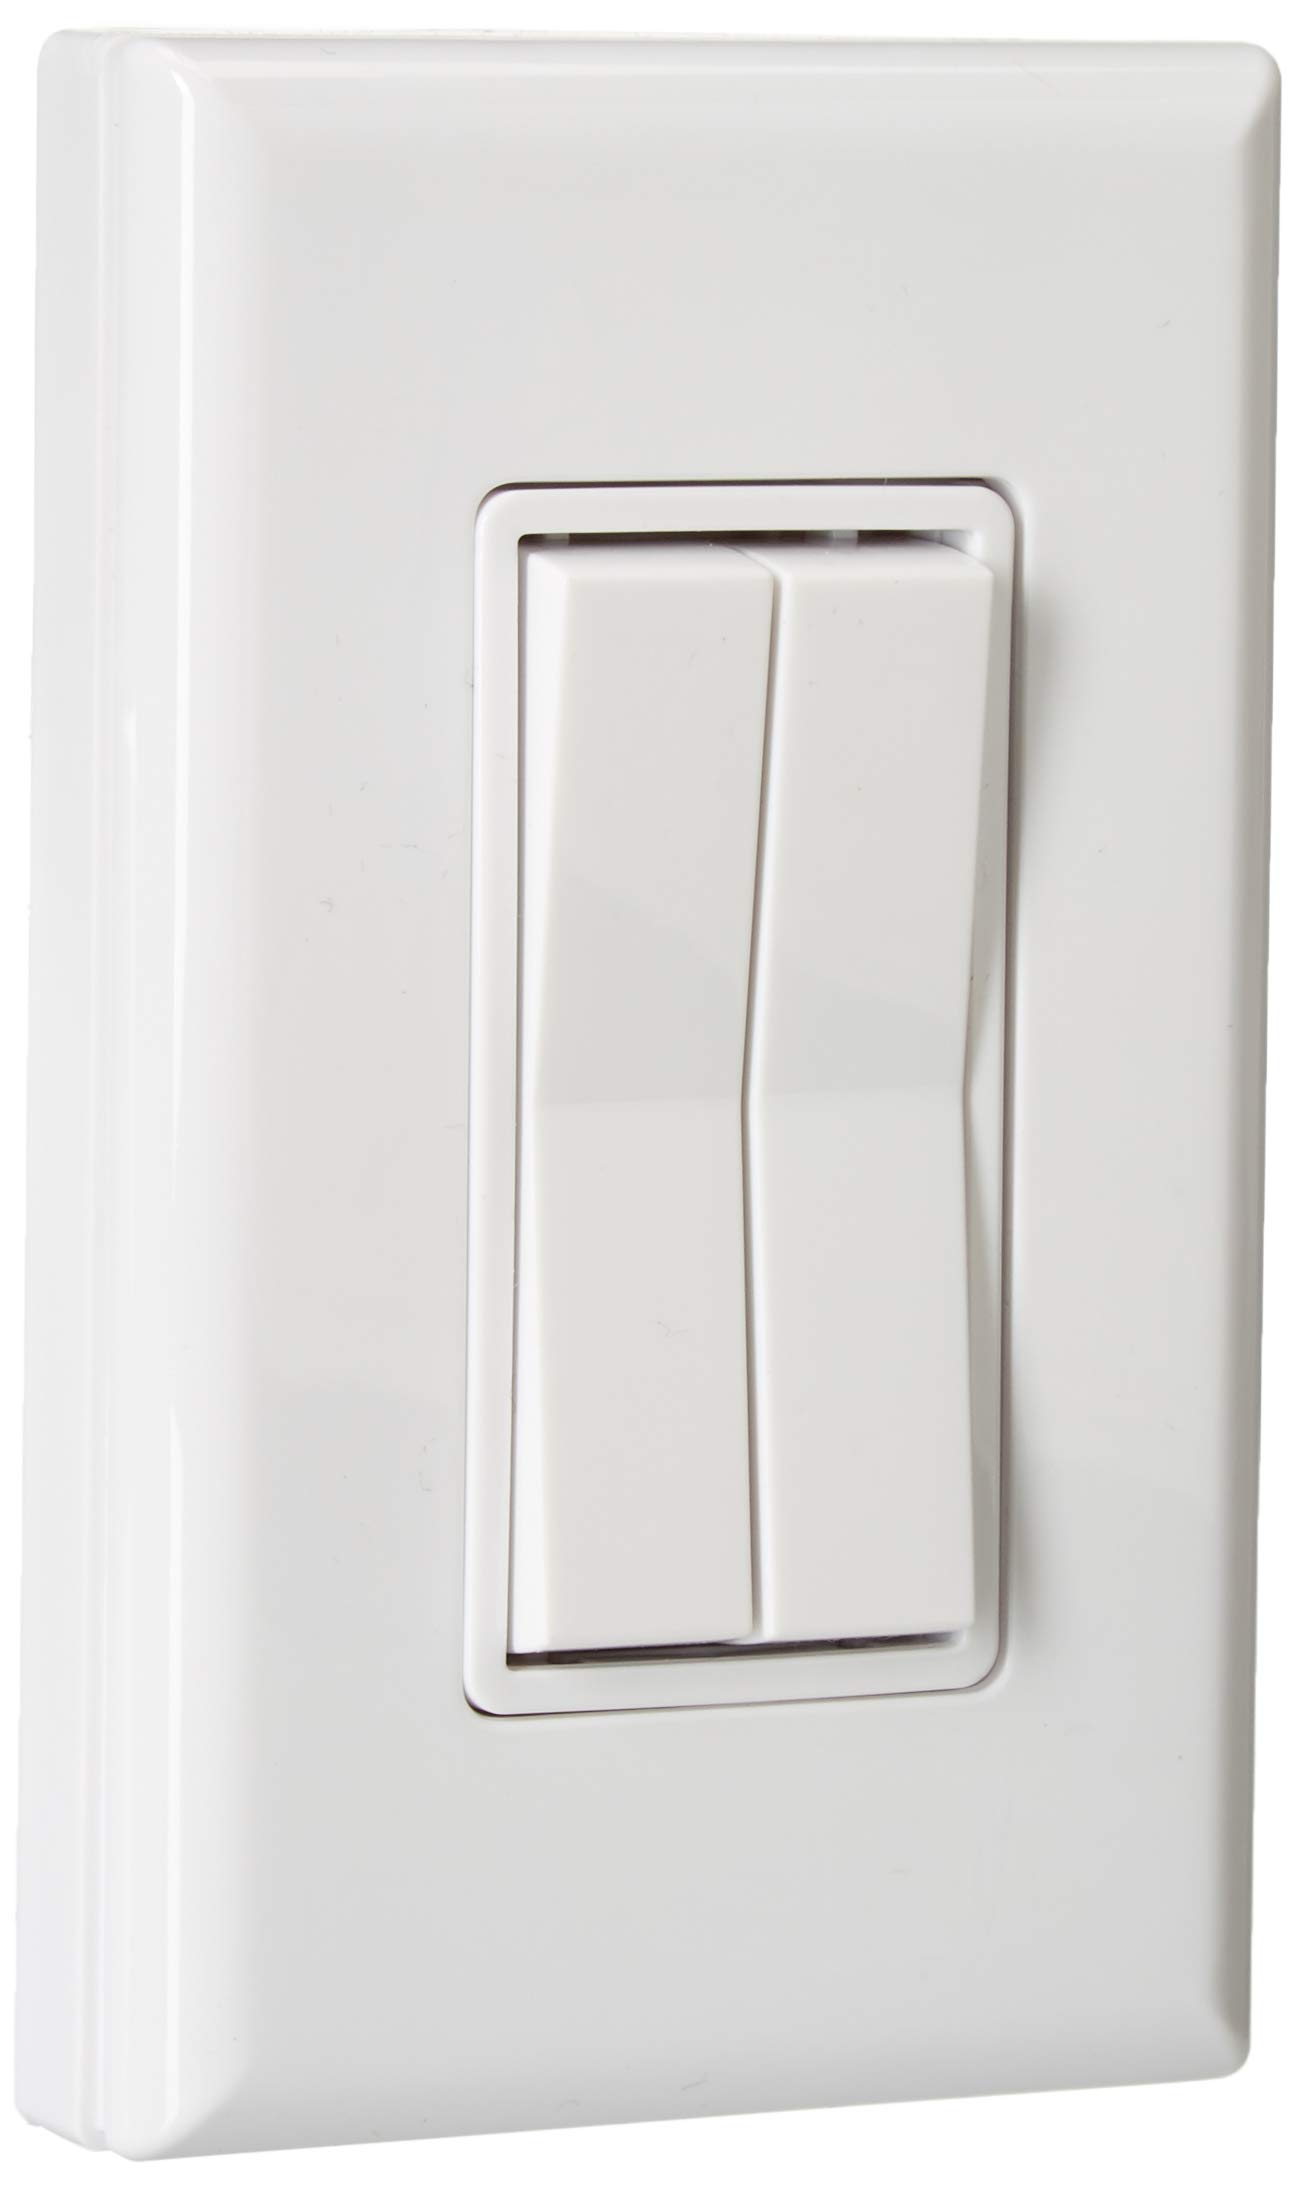 White - Click for Philips Hue Decora style Kinetic Dimmer switch for Philips Hue bulb or light, RunLessWire Friends of Hue upgrade for Hue Tap, Compatible w/Apple HomeKit, Alexa, Google Assistant